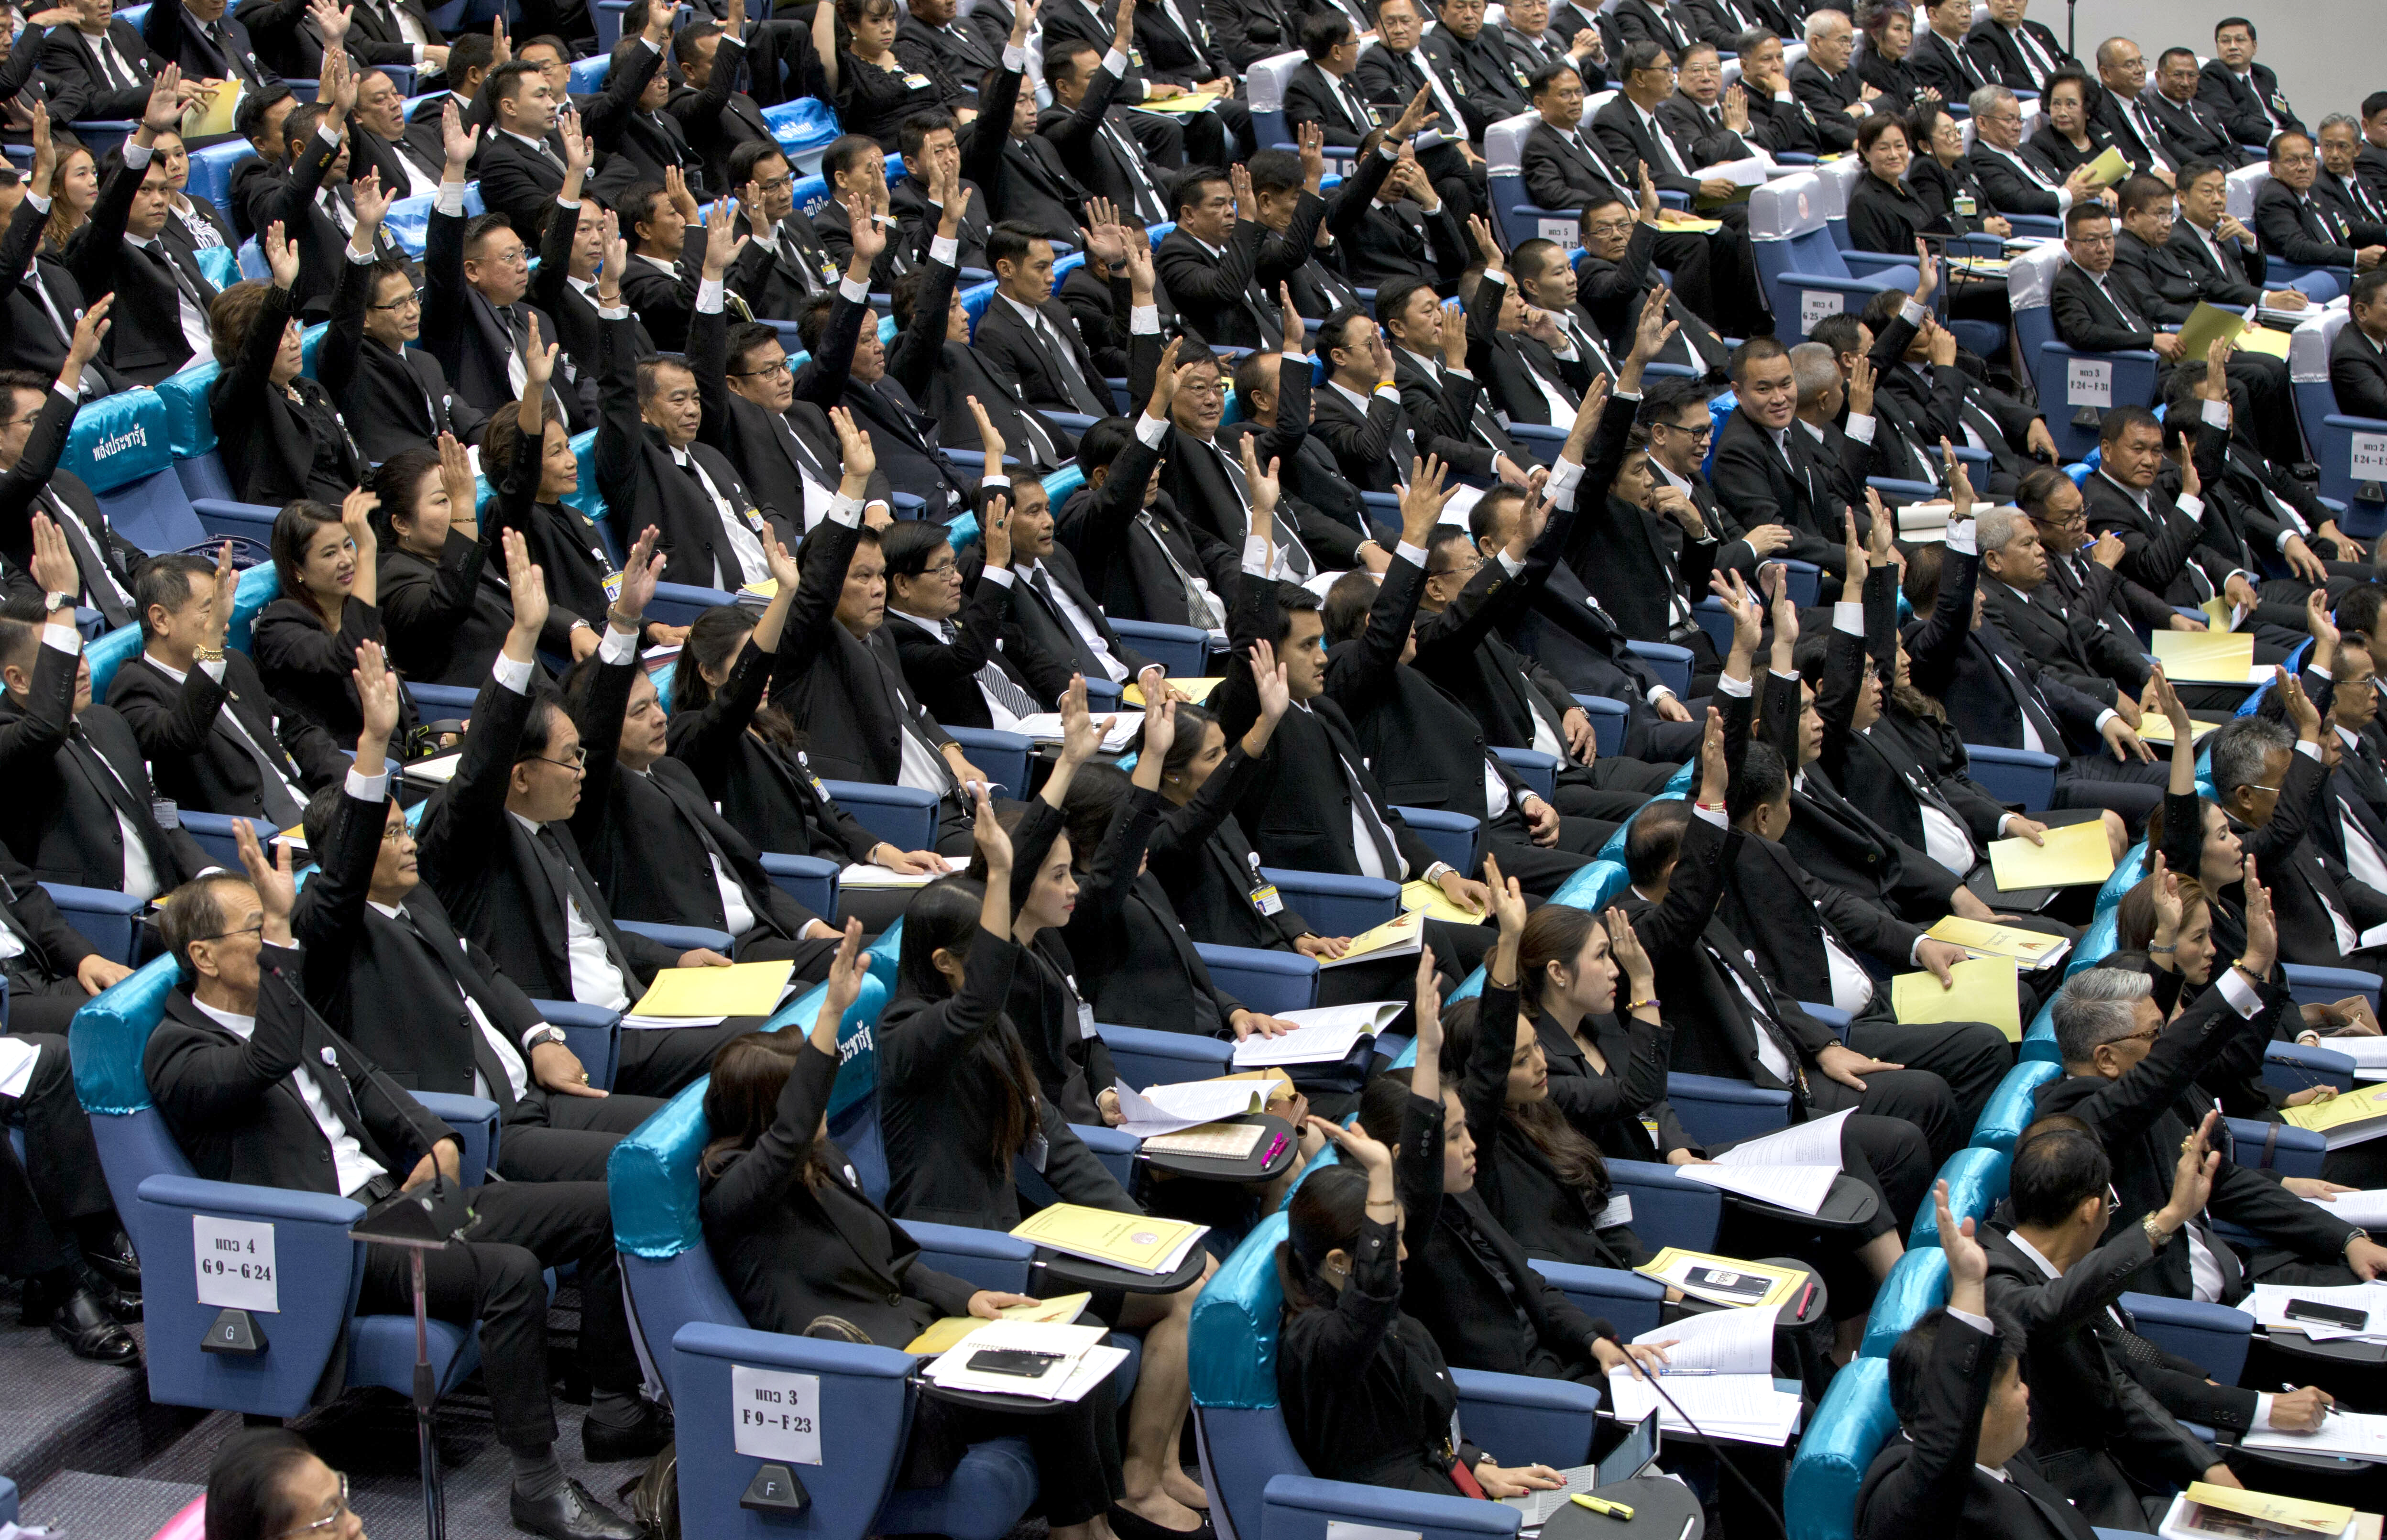 Members of the parliament representing the military-backed Palang Pracharath party raise their hands, approving the nomination of Prayuth Chan-ocha as Thailand's prime minister during a session in Bangkok, Thailand, June 5, 2019.